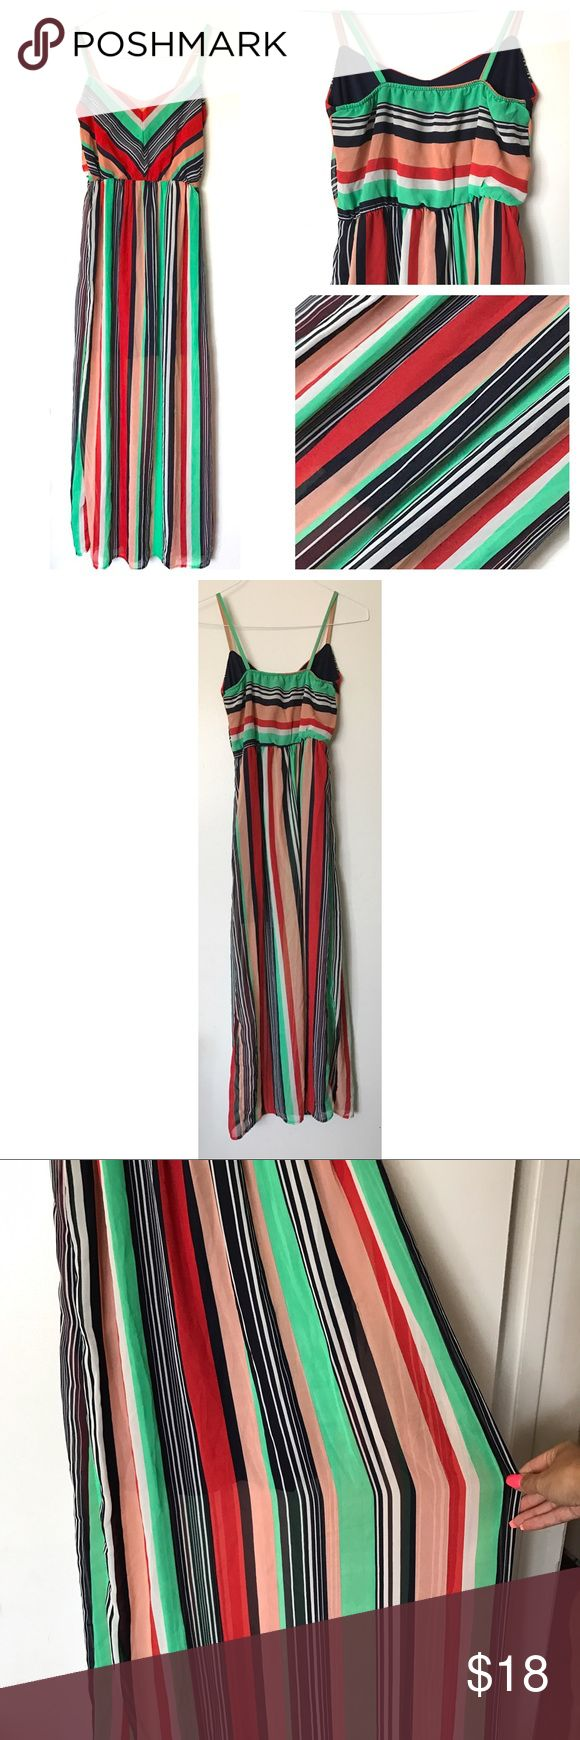 "Rainbow Striped Flowy Semi-Sheer Maxi Dress Worn a few times gently. Slight wrinkles on some parts of the skirt from storage. Nothing major. No wear signs/rips/stains.  Smoke free pet friendly. Chest fits 30-35"" and waist 24-28"" measurements taken unstretched then stretched to determine range of fit. Dark blue part of dress hits mid thigh underneath and the rest of the skirt is semi-Sheer. Ruby Rox Dresses Maxi"